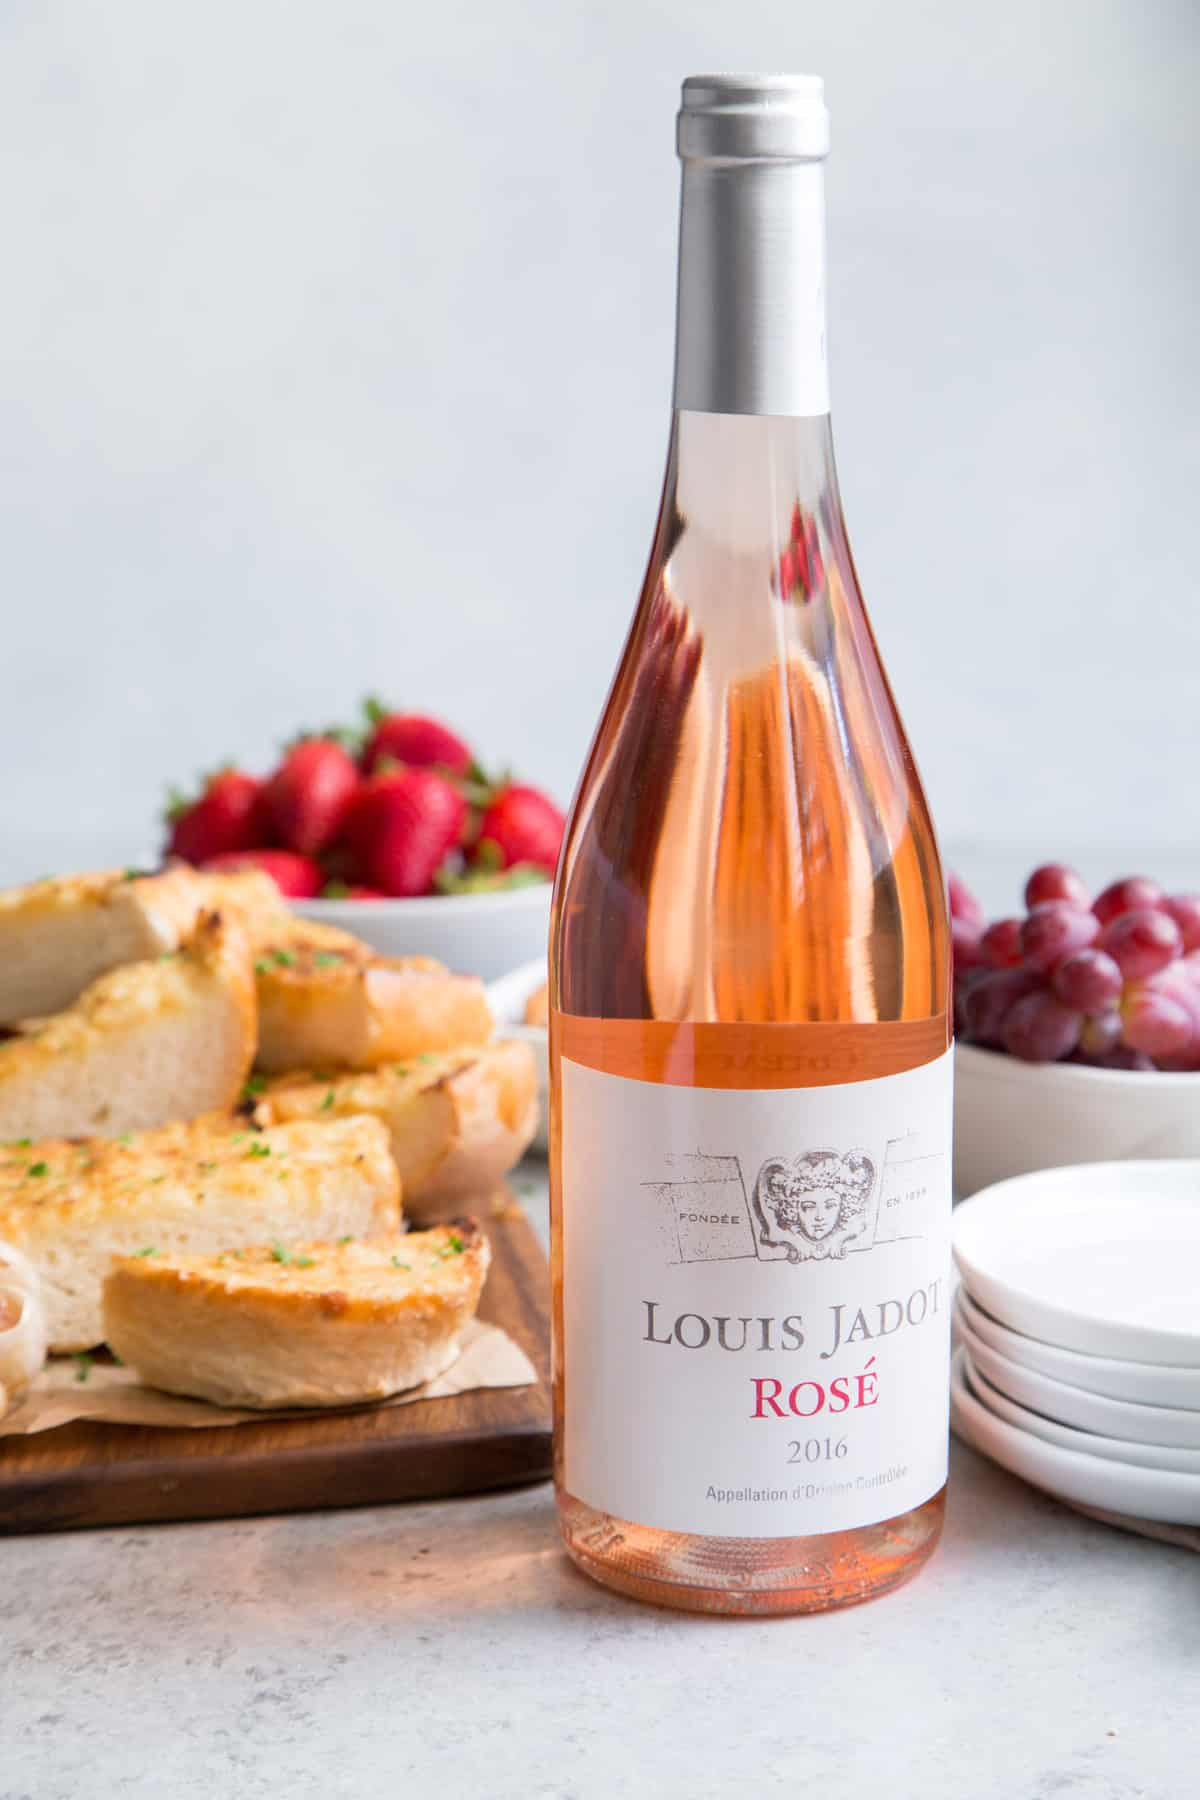 Roasted Garlic Bread with Rose Wine Pairing